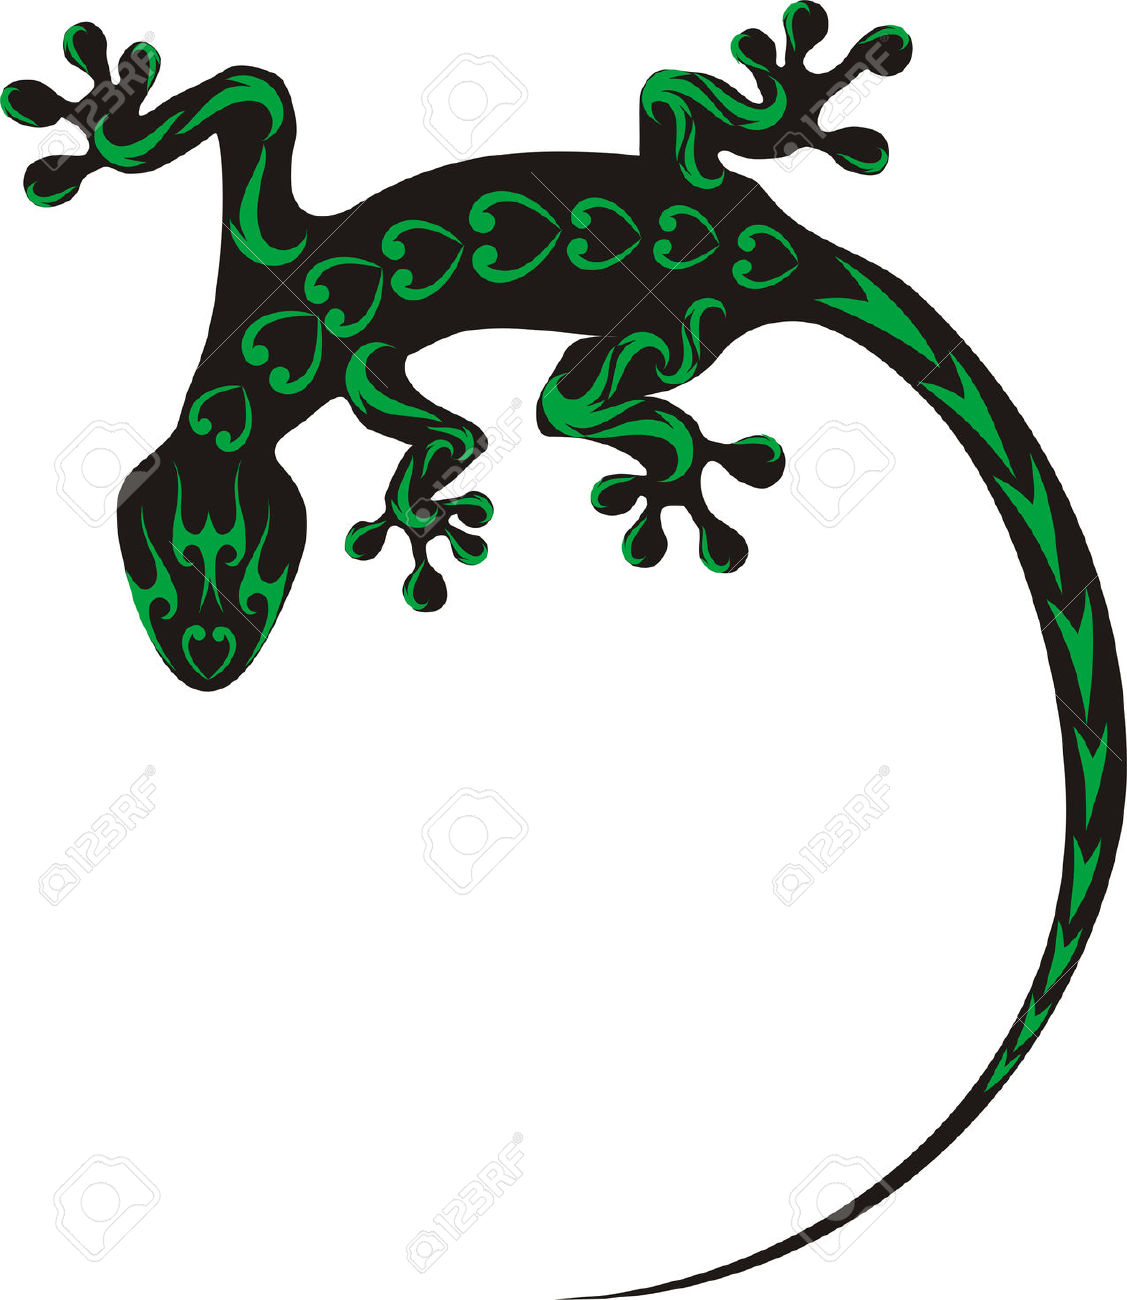 180 Saurian Stock Illustrations, Cliparts And Royalty Free Saurian.